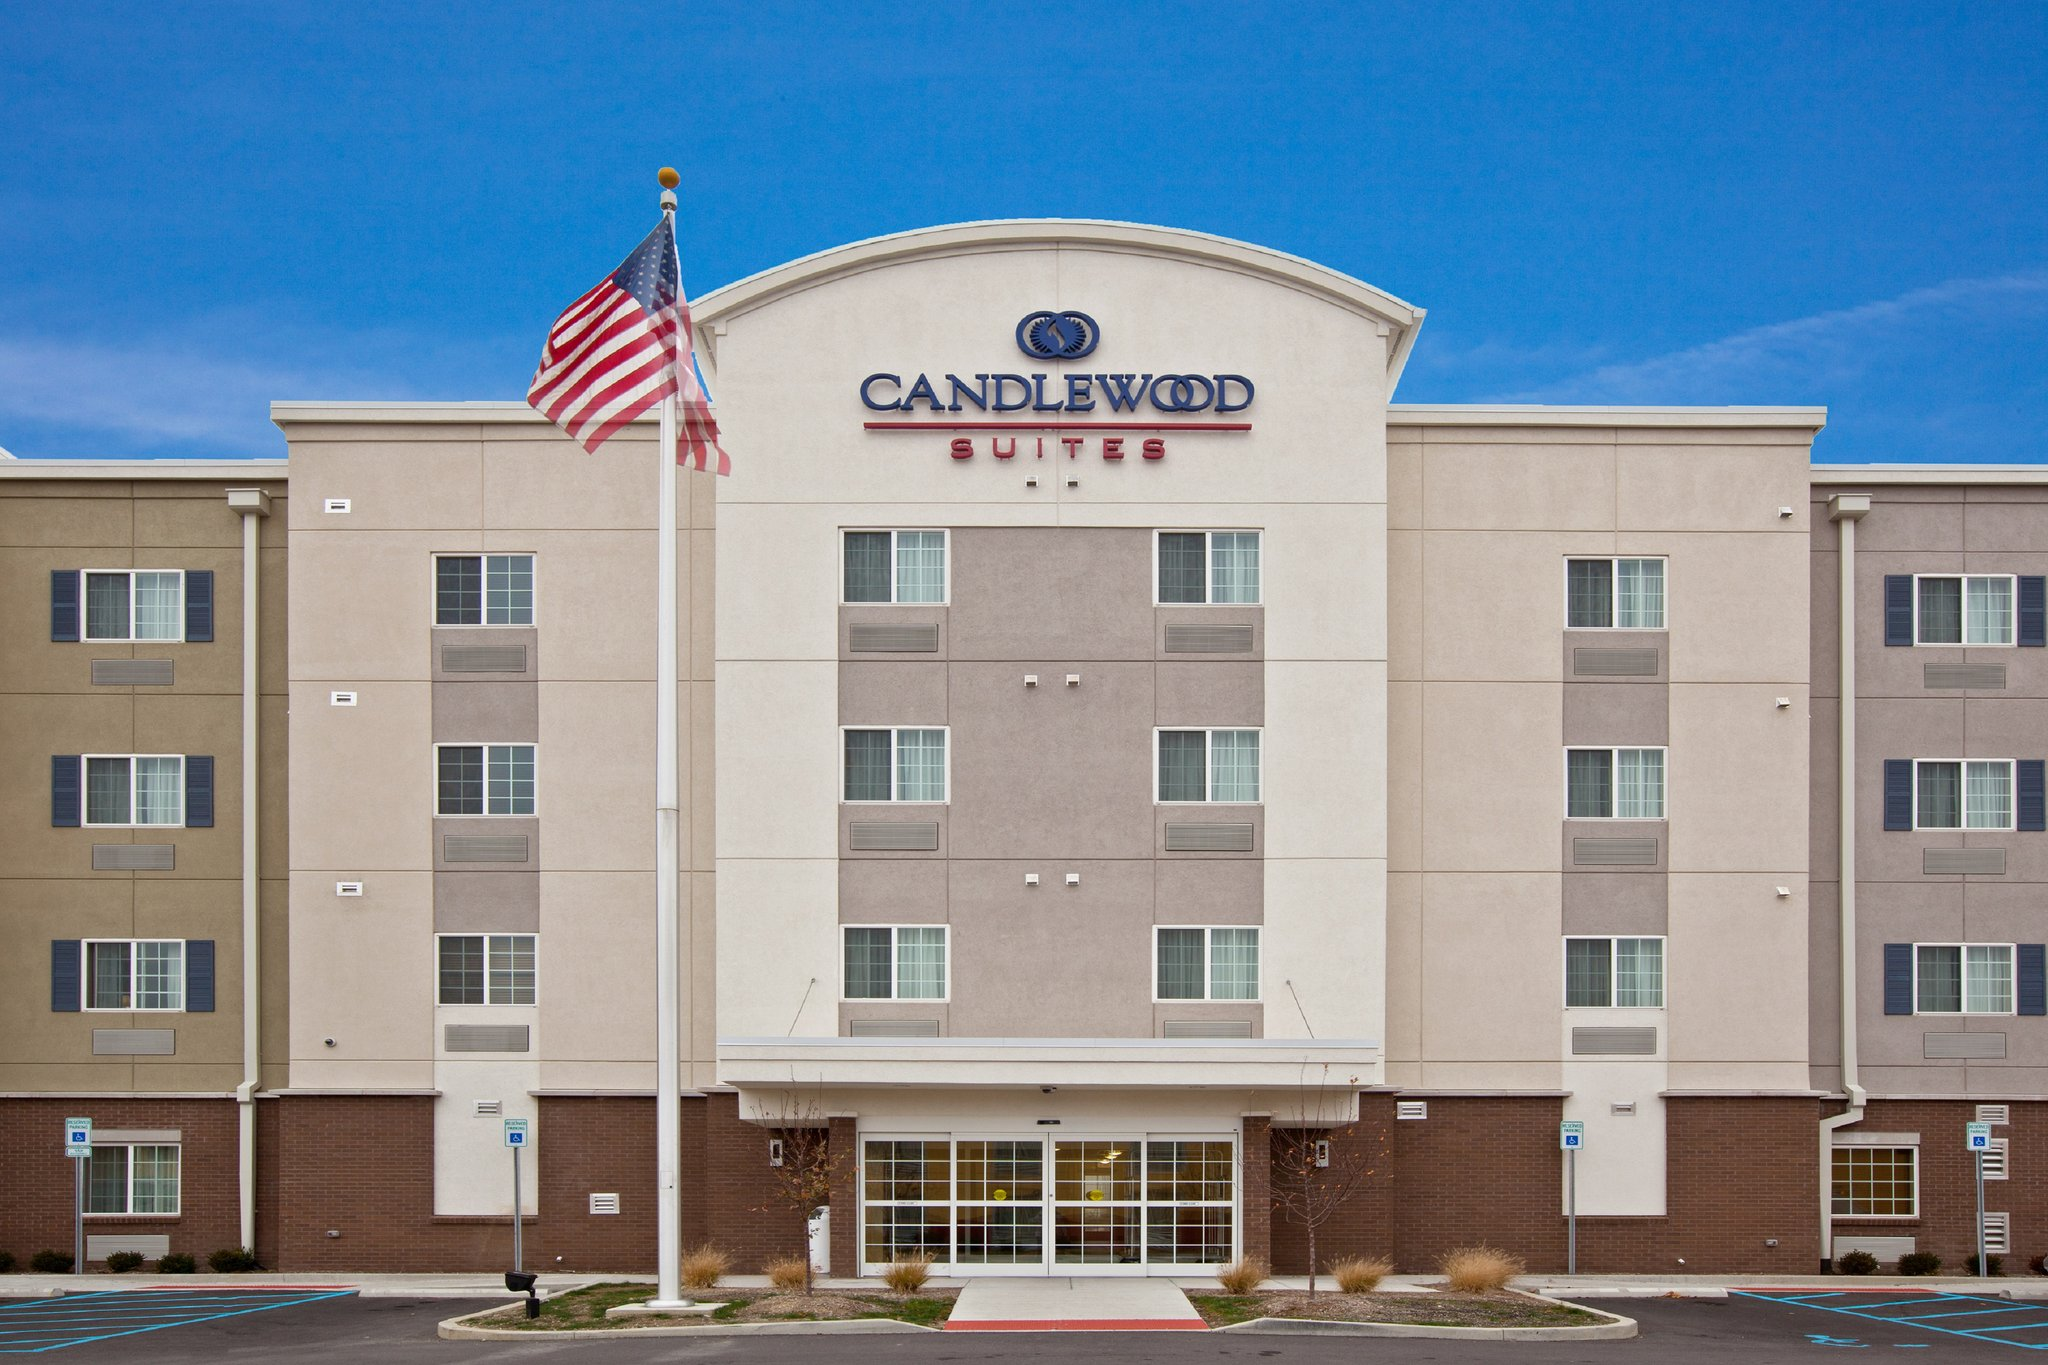 Candlewood Suites - Indianapolis East